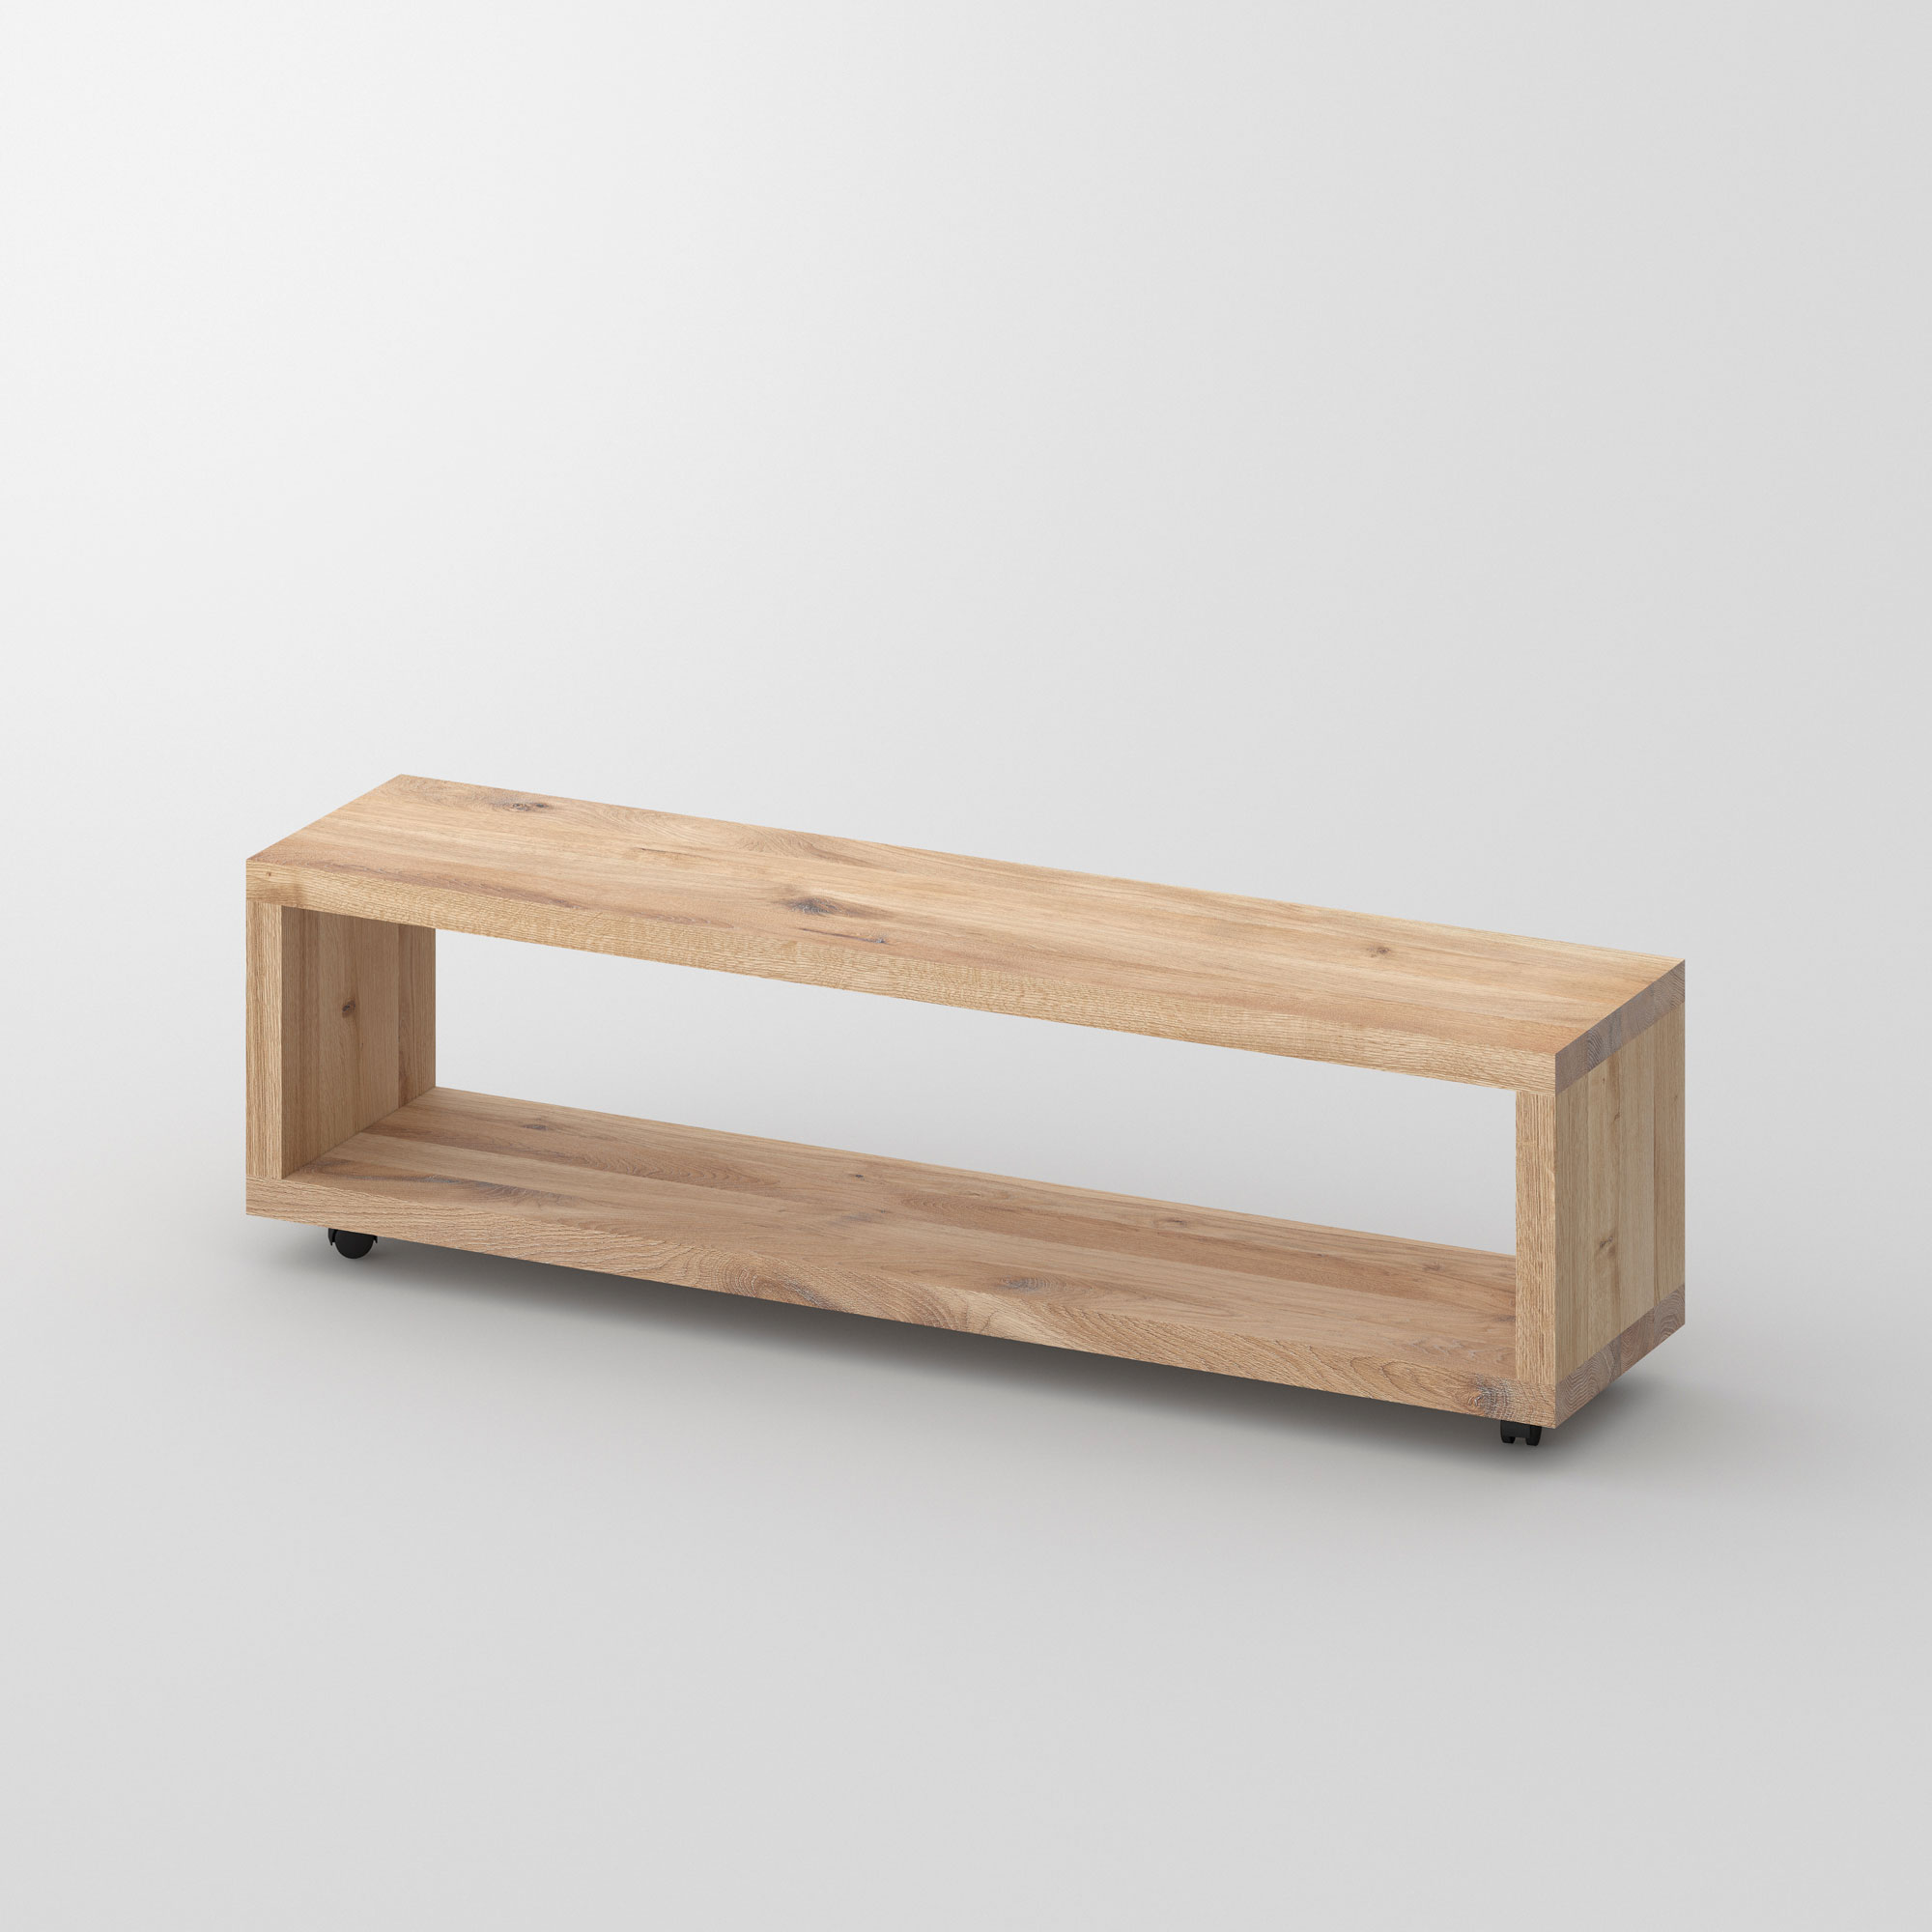 Rolling Night Table MENA-B-ROL cam1 custom made in solid wood by vitamin design